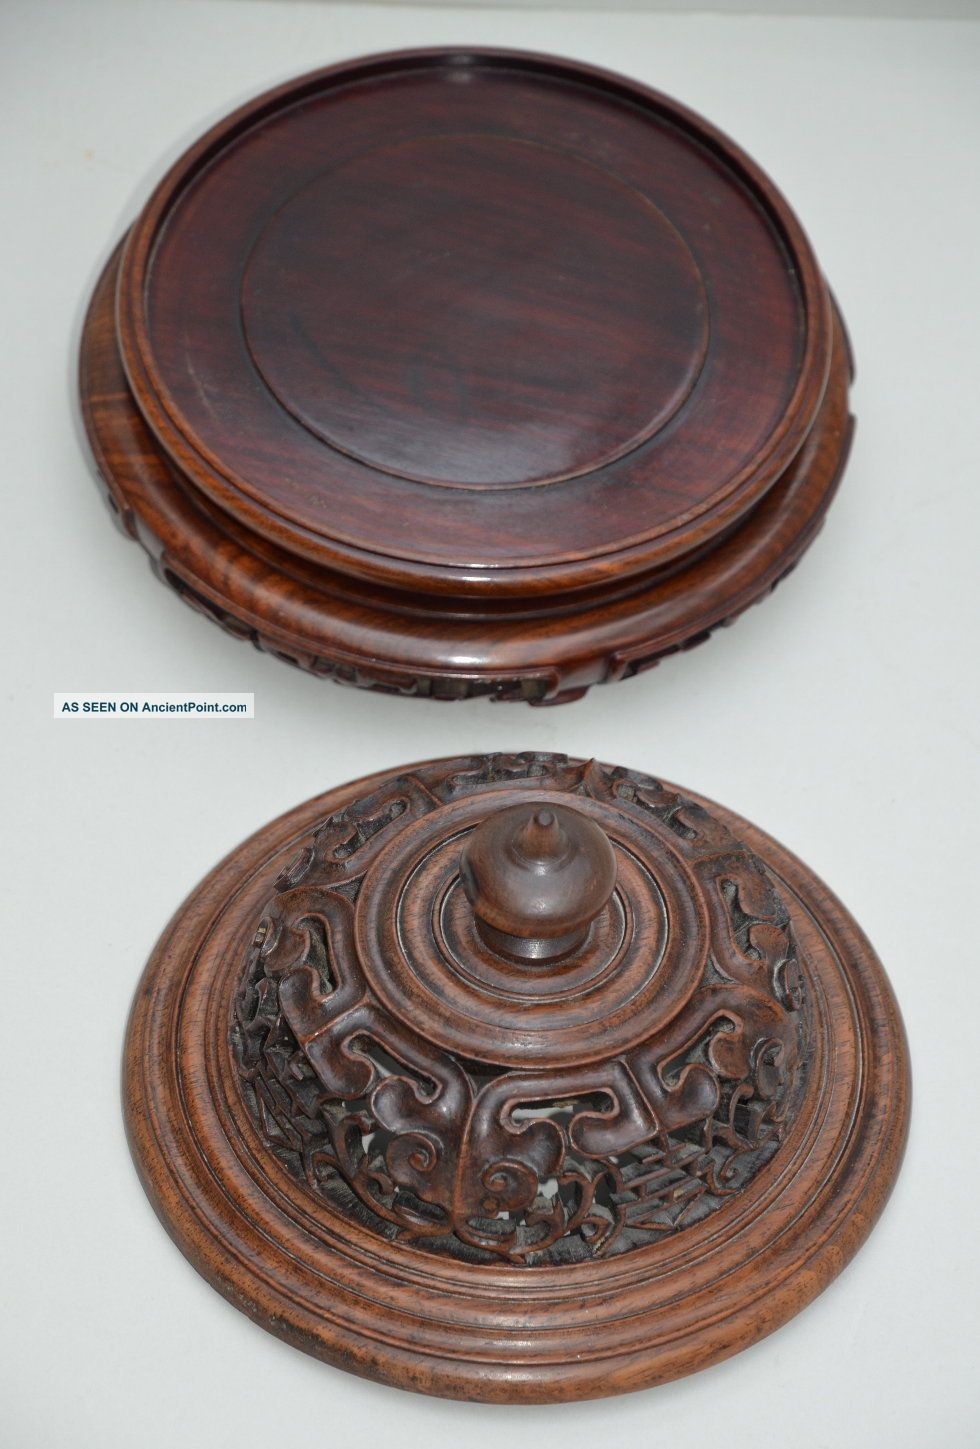 Fine C19 Chinese Qing Dynasty Huanghuali Wood Lid & Rosewood Stand Vases photo